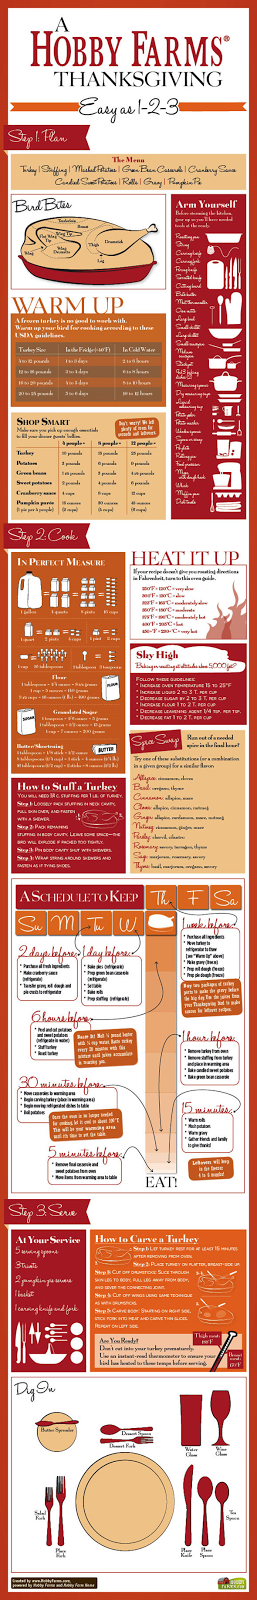 http://www.hobbyfarms.com/food-and-kitchen/serve-up-hf-thanksgiving-infographic.aspx